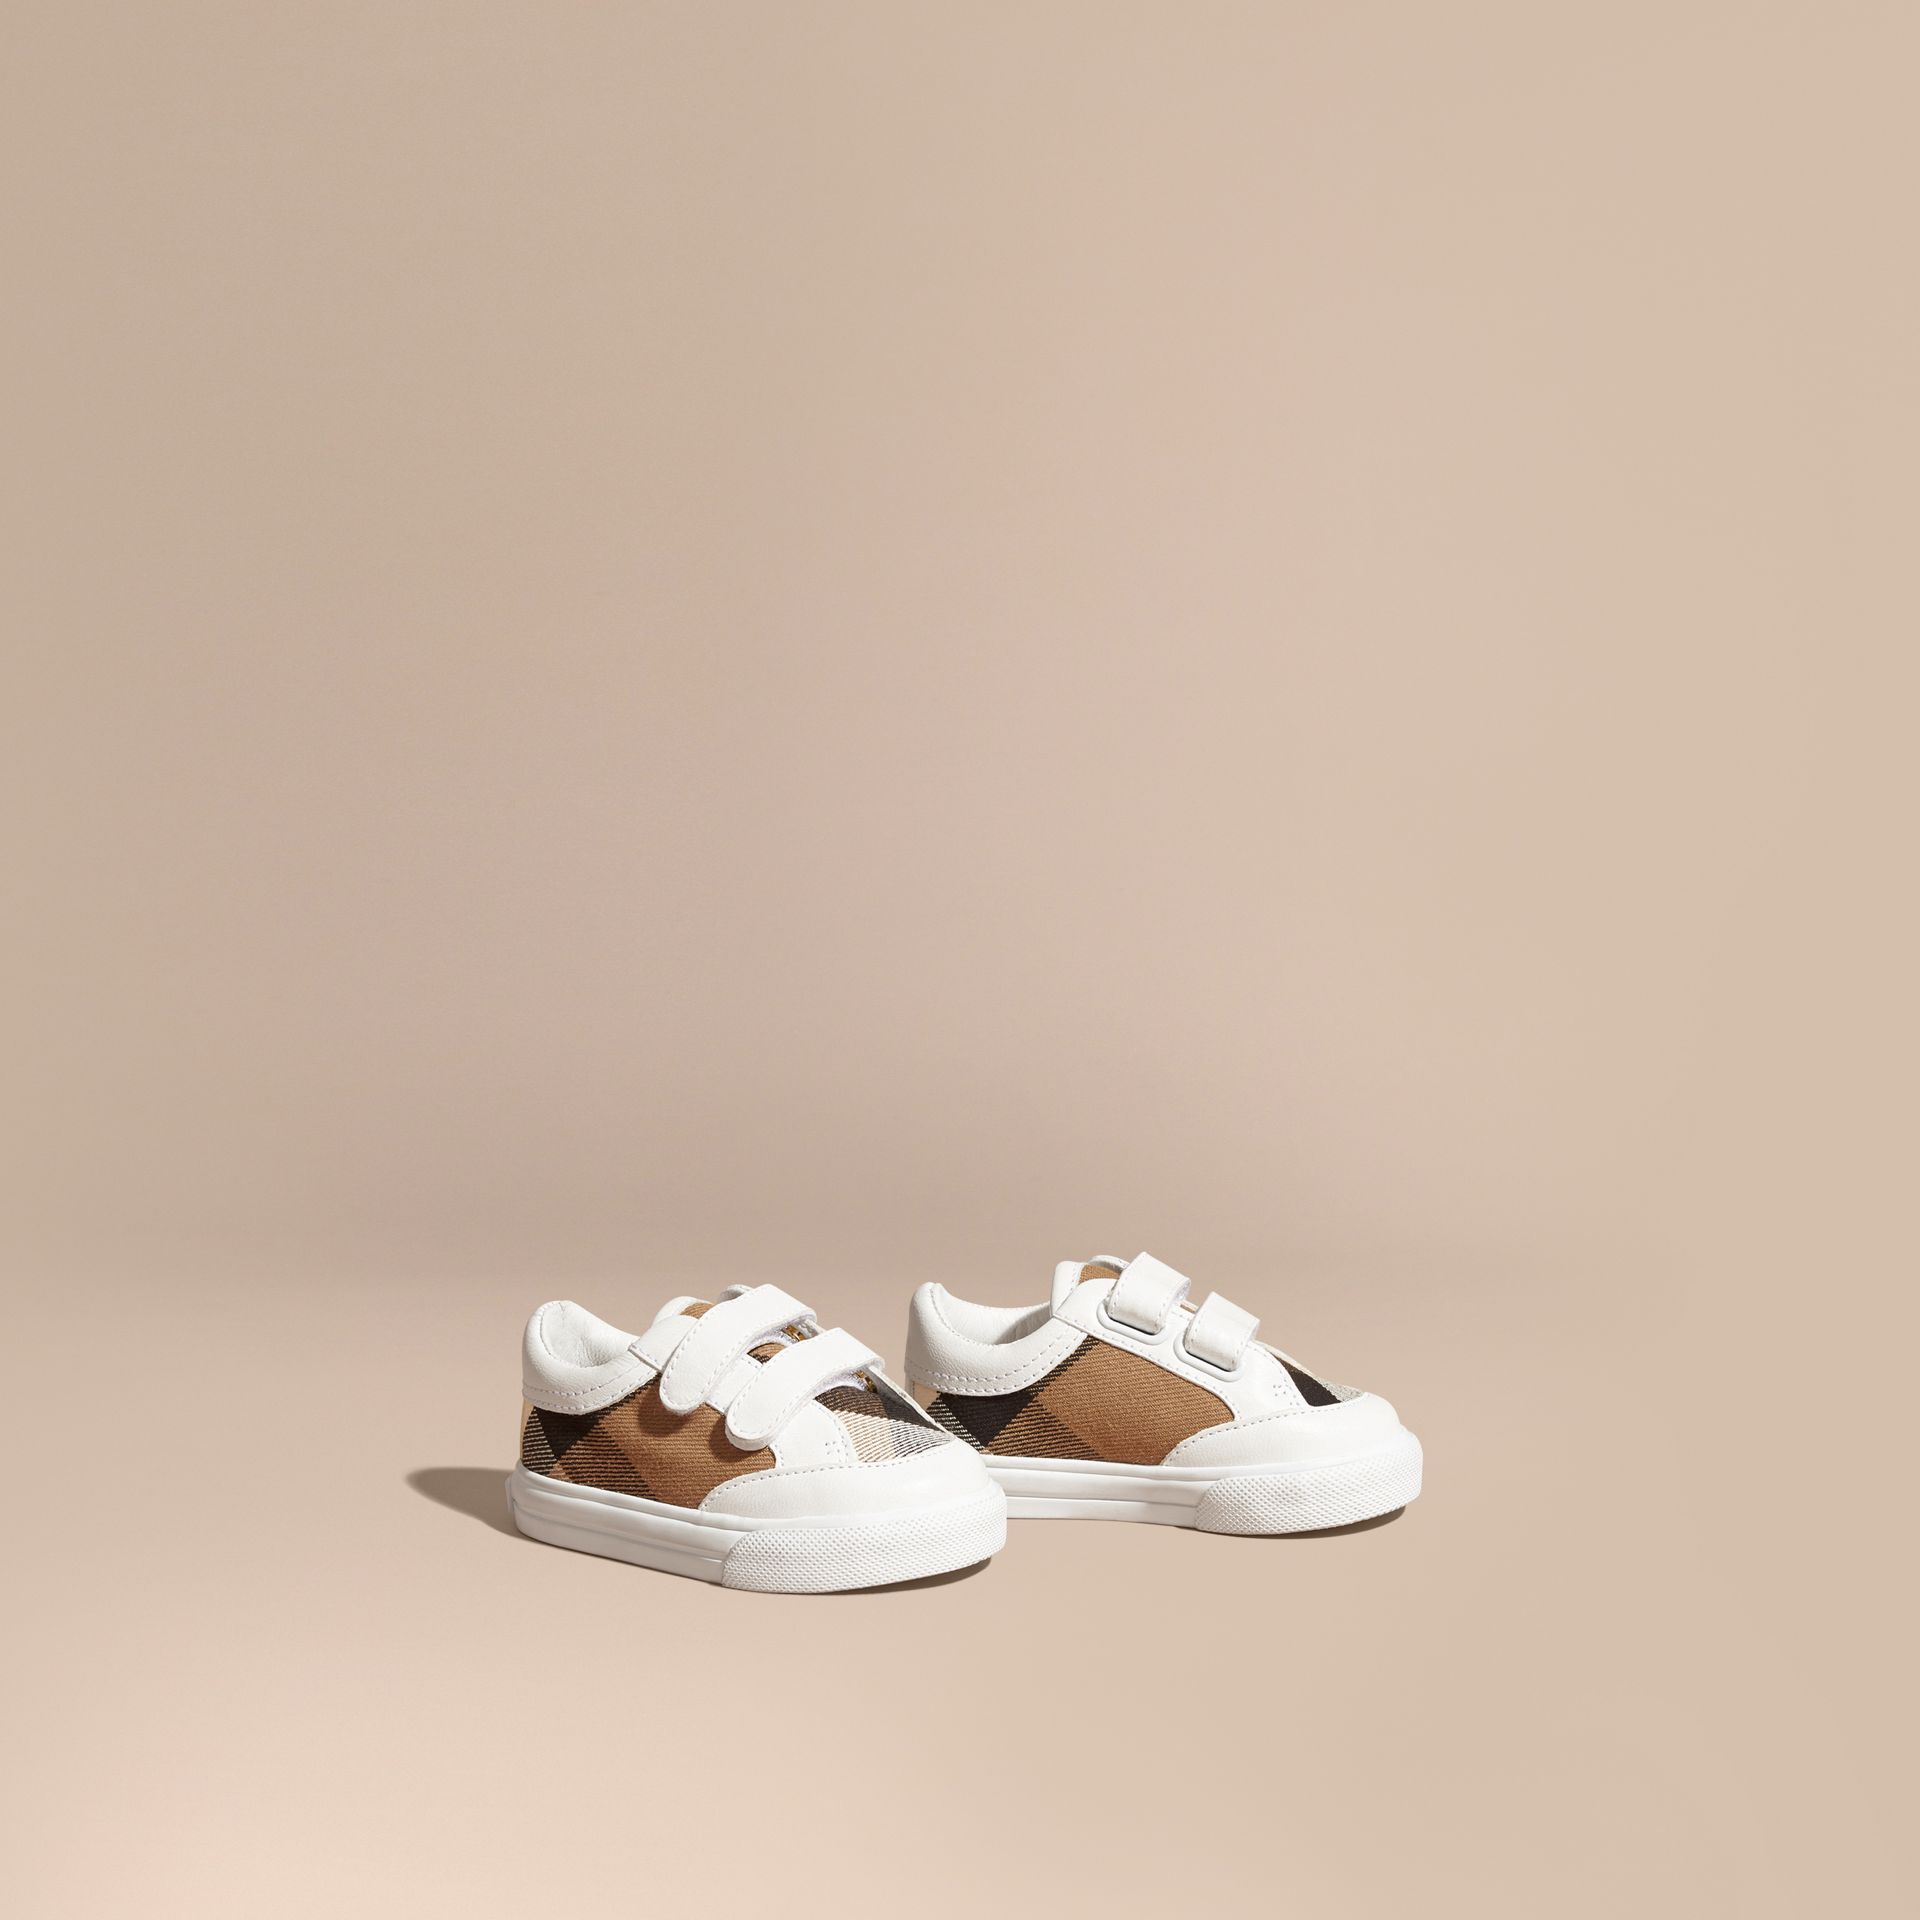 Optic white House Check and Leather Trainers Optic White - gallery image 1